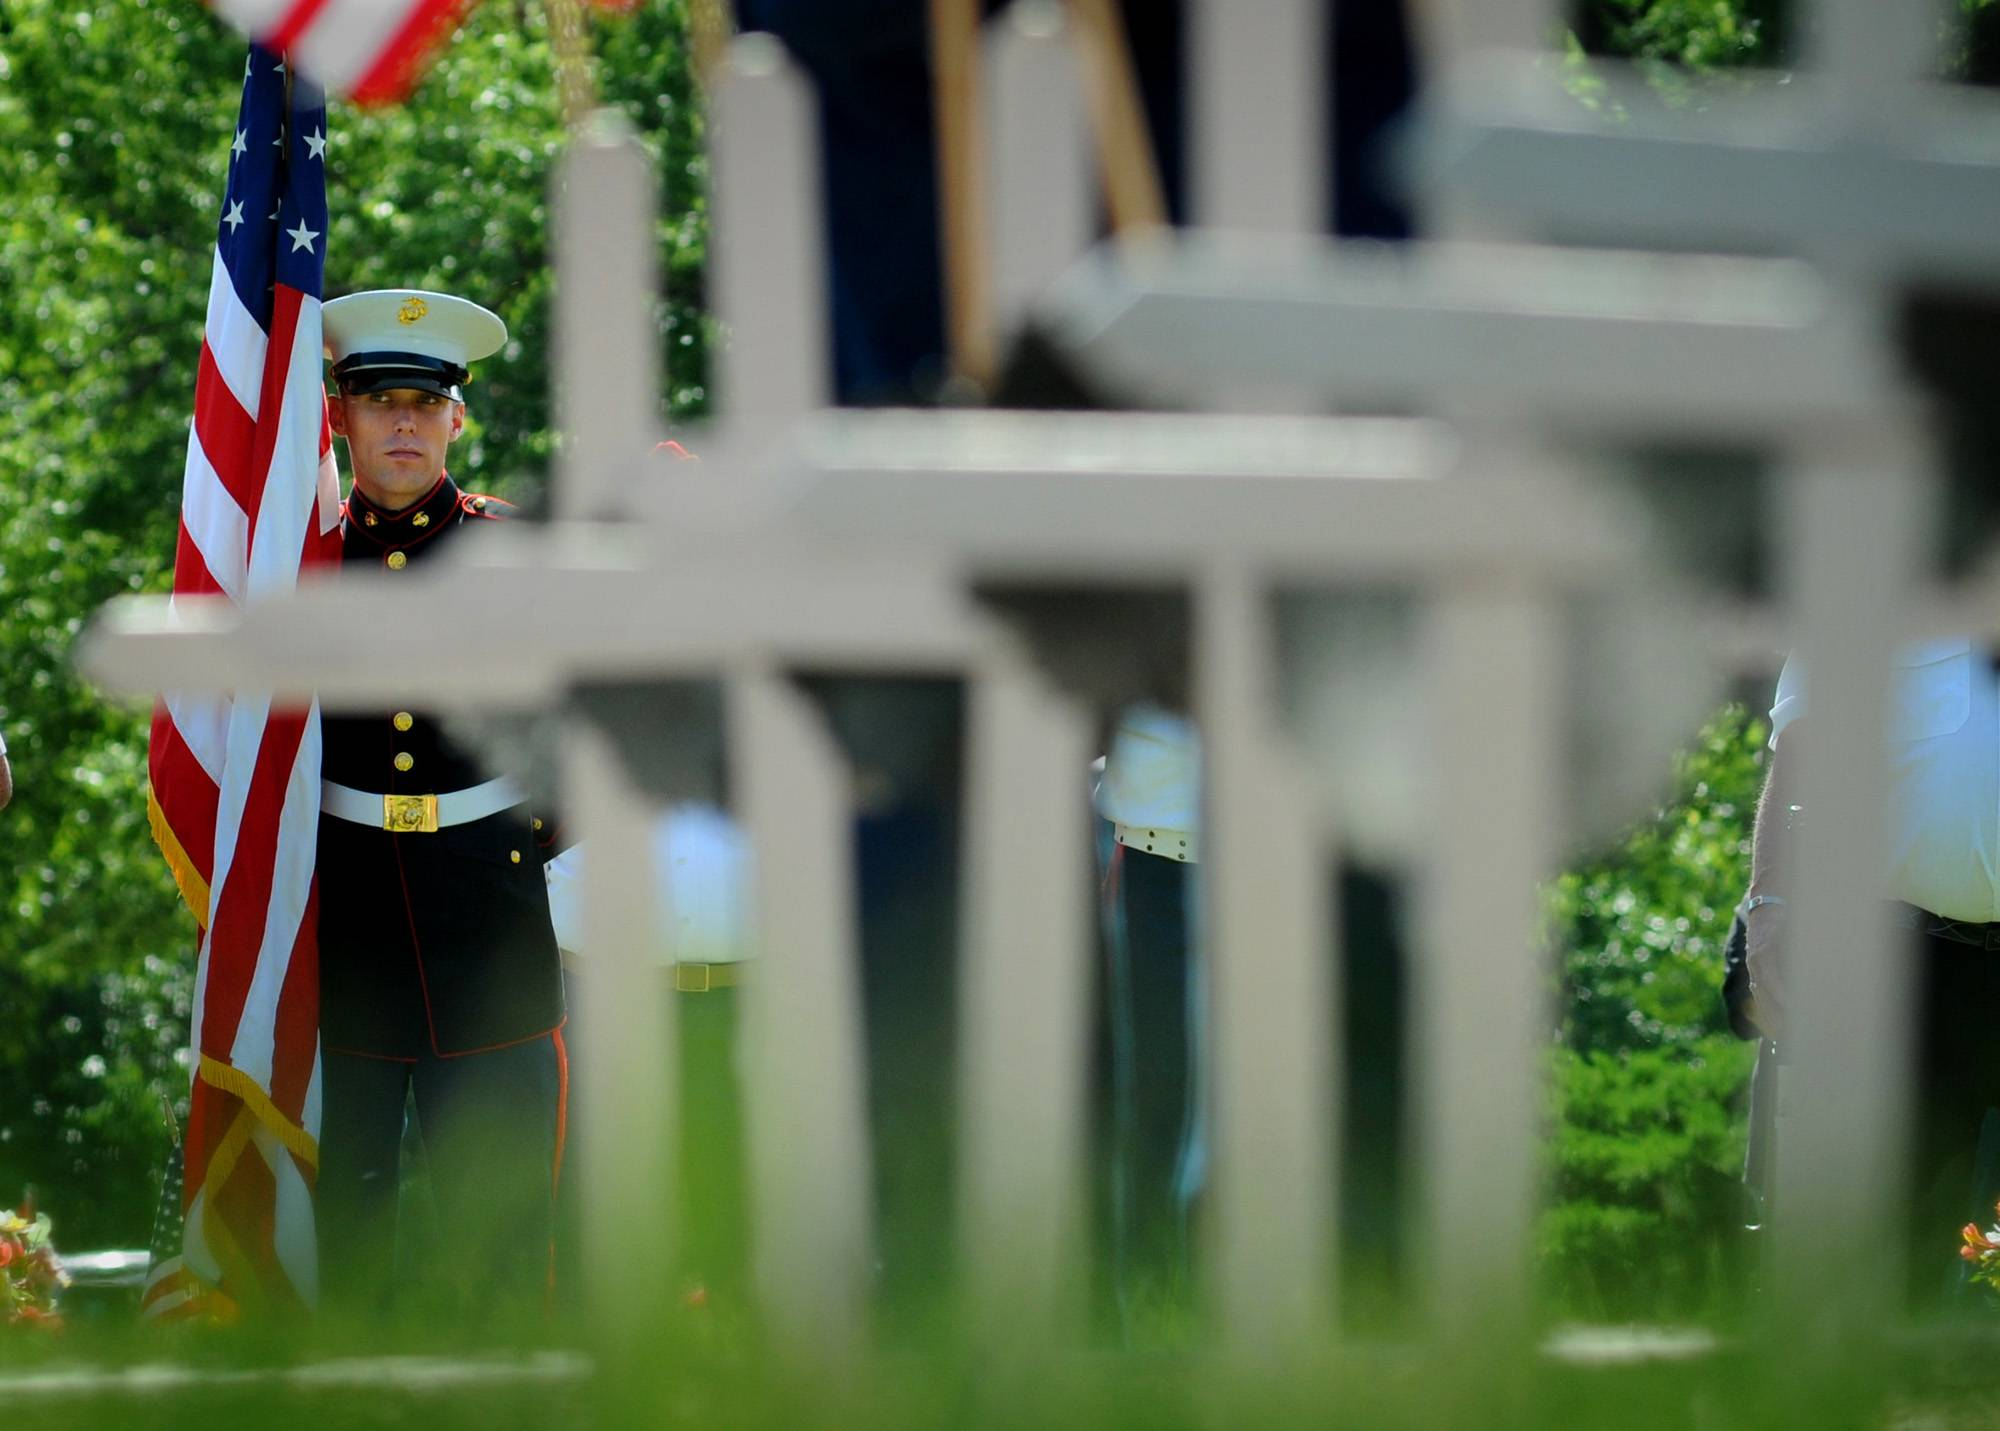 Sgt. Brandon Uhrich, of the U.S. Marine Corps, participates with the Tri-Rivers Detachtment of the Marine Corps League Monday, May 26, 2014, in a Memorial Day ceremony at Roselawn Memorial Park in Salina, Kan. Uhrich, of Grand Forks, North Dakota, is a Marine Corps recruiter stationed in Salina.